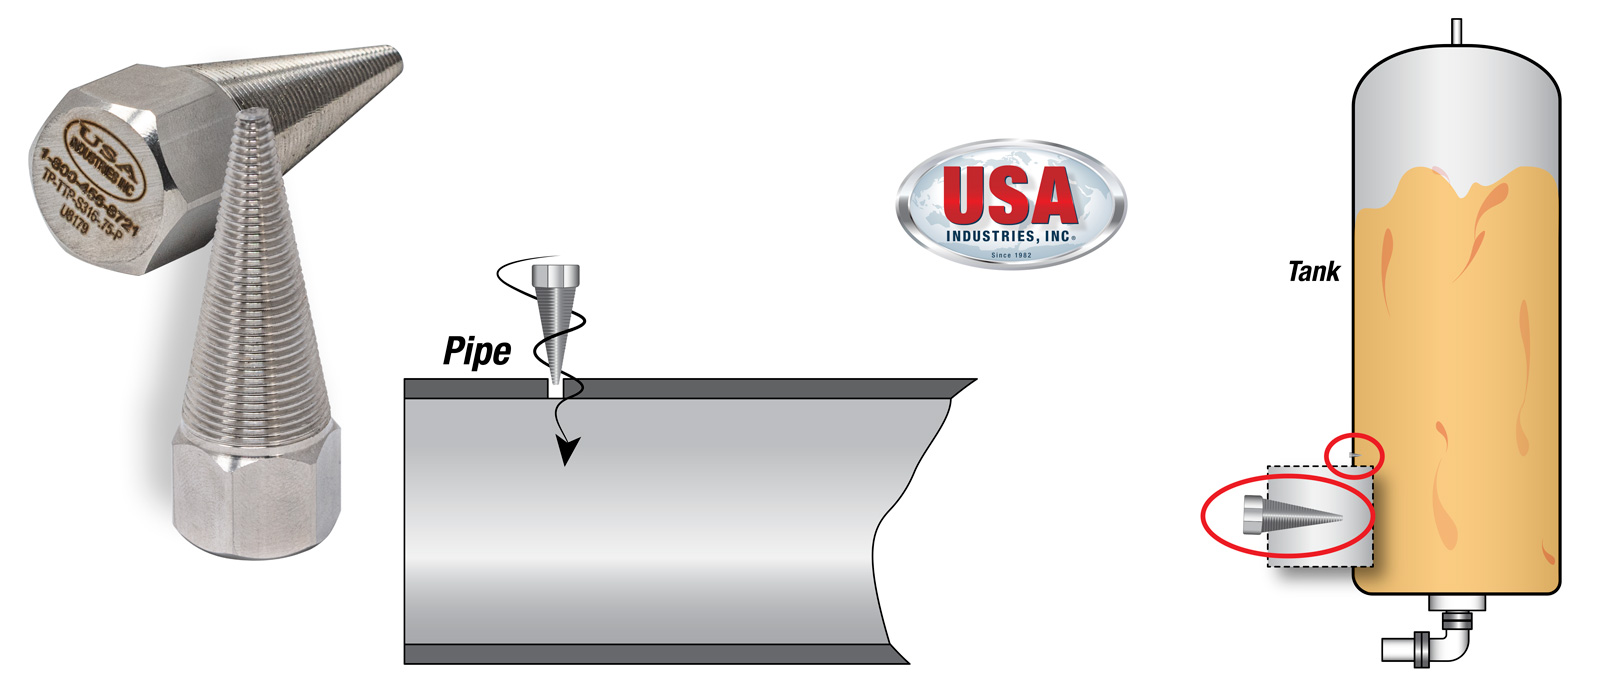 USA-Industries-Inc-Threaded-Metal-Tapered-Illustration-Added-v2